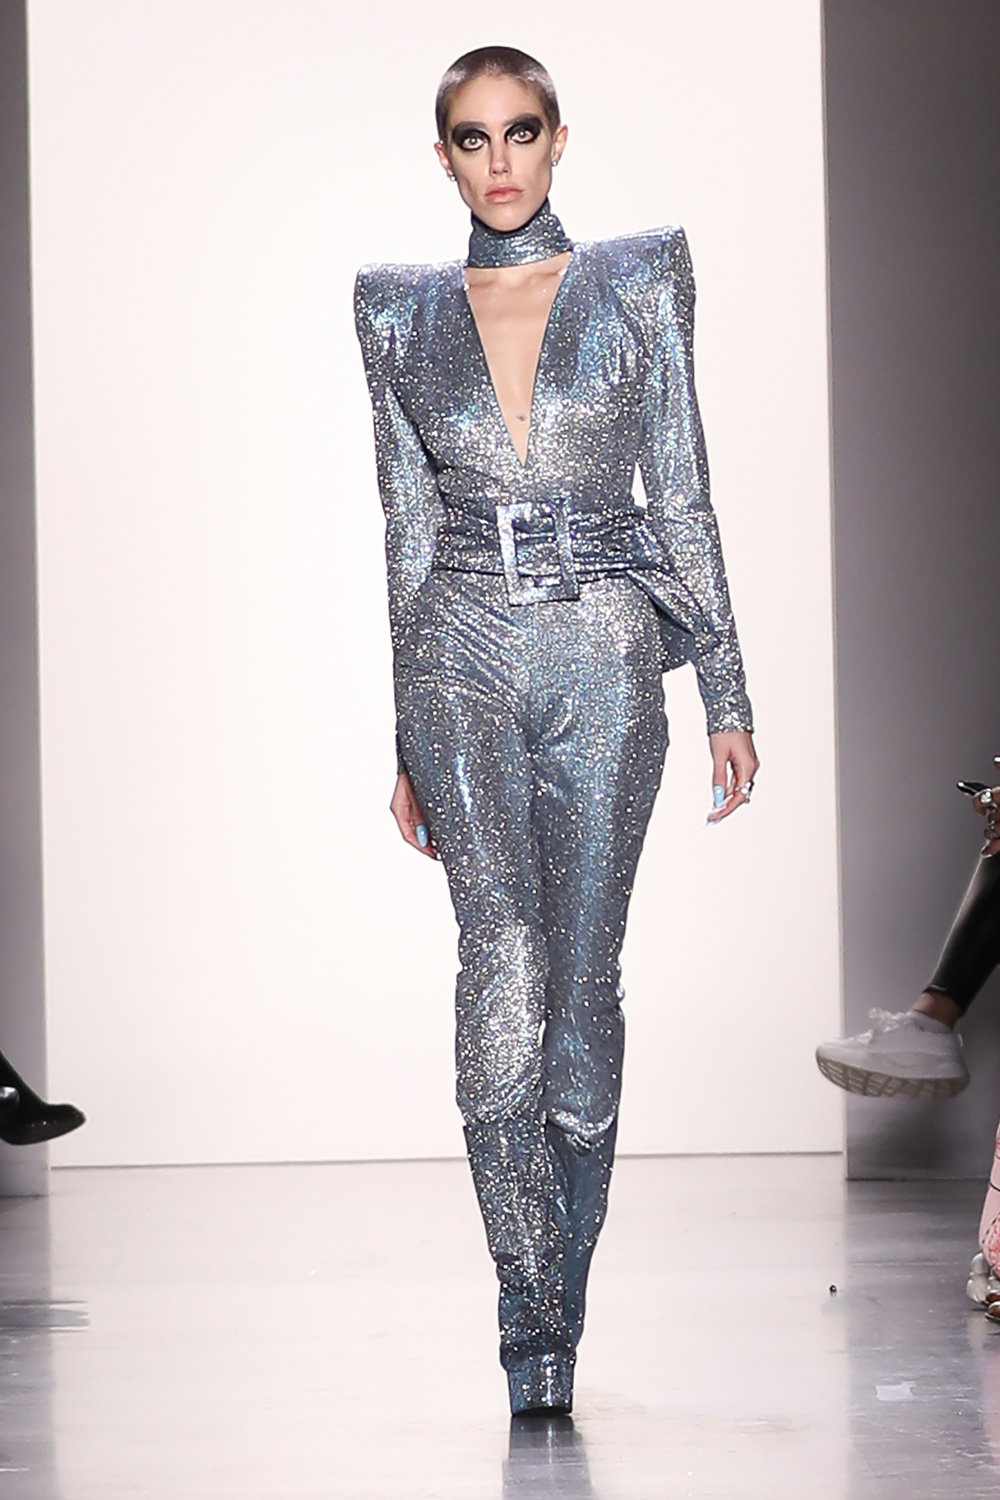 Hakan-Akkaya-NYFW-Fall-2019-23-300dpi-Photo-Credit-Elvia-Gobbo.jpg